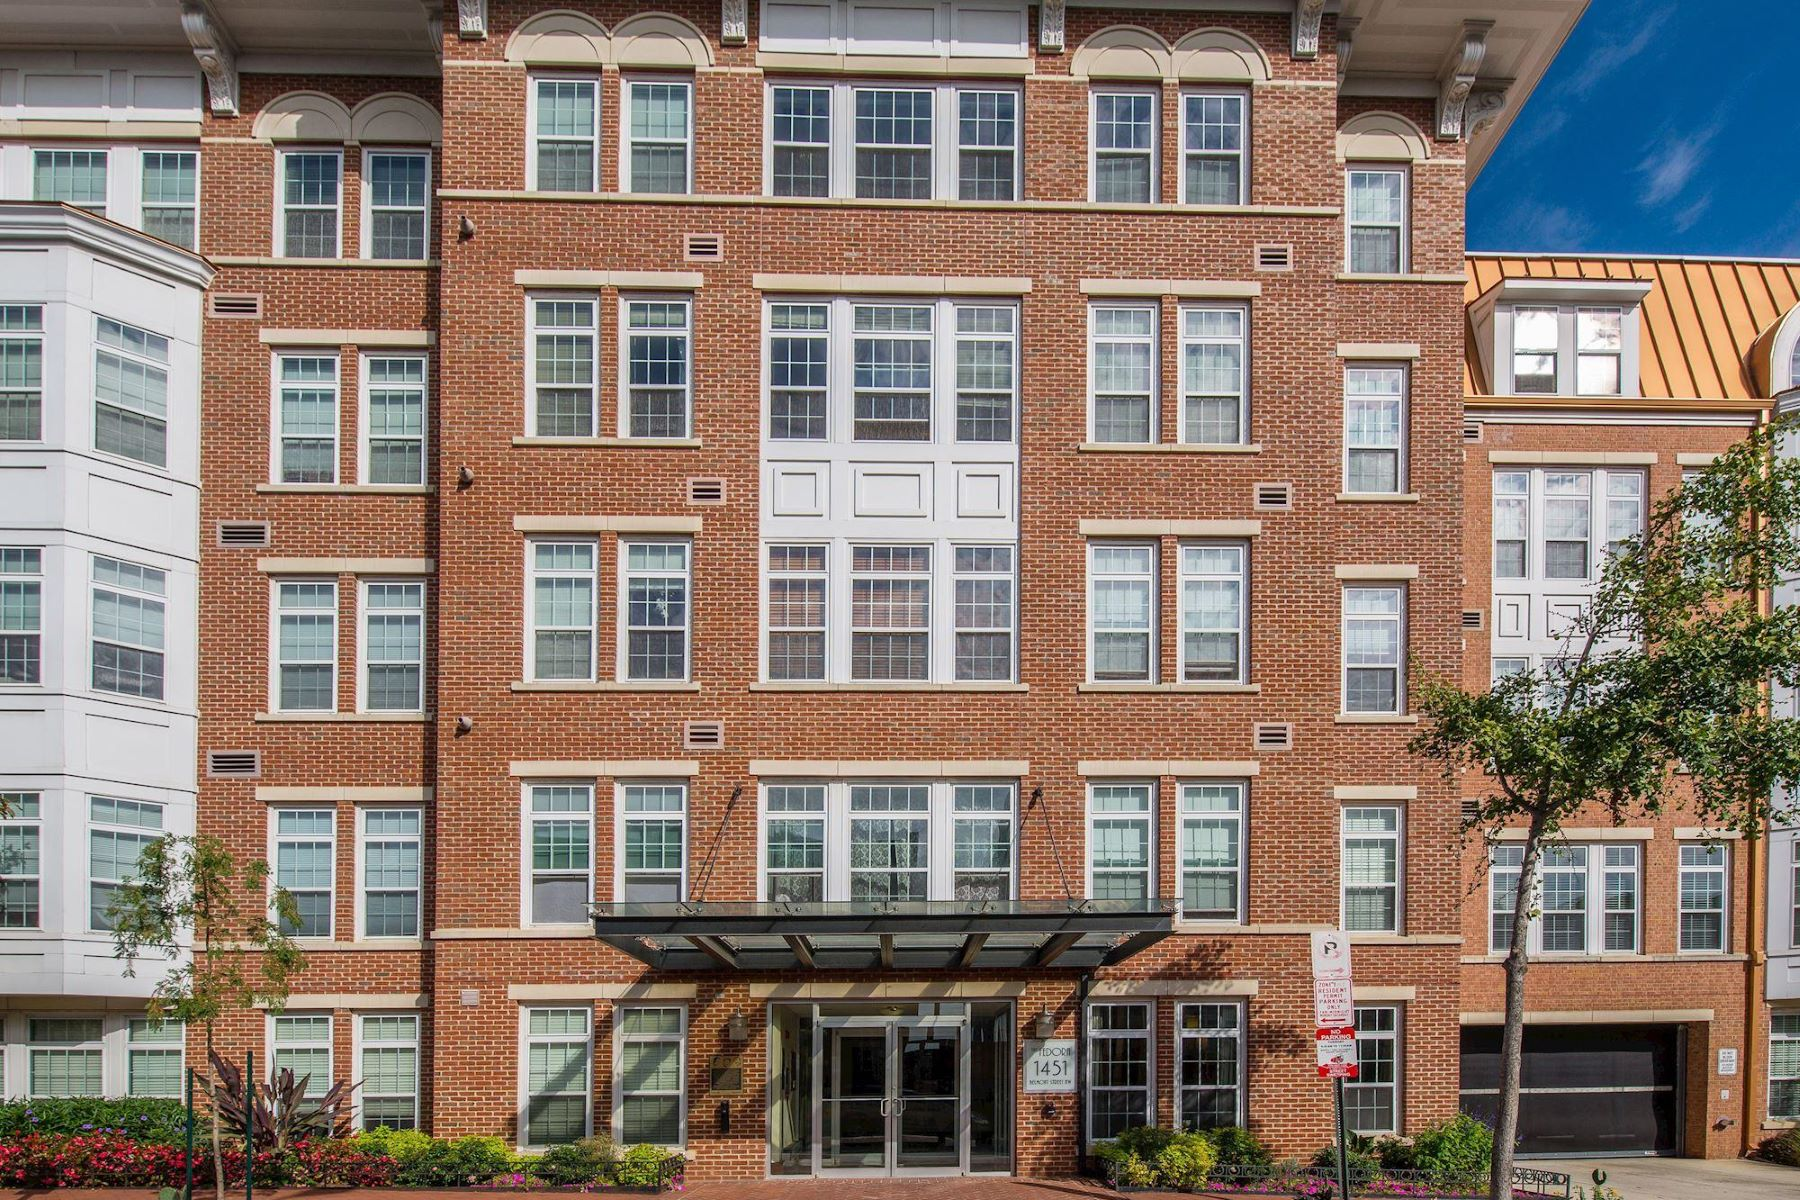 Condominium for Rent at 1451 Belmont St Nw #211 1451 Belmont St Nw #211 Washington, District Of Columbia 20009 United States